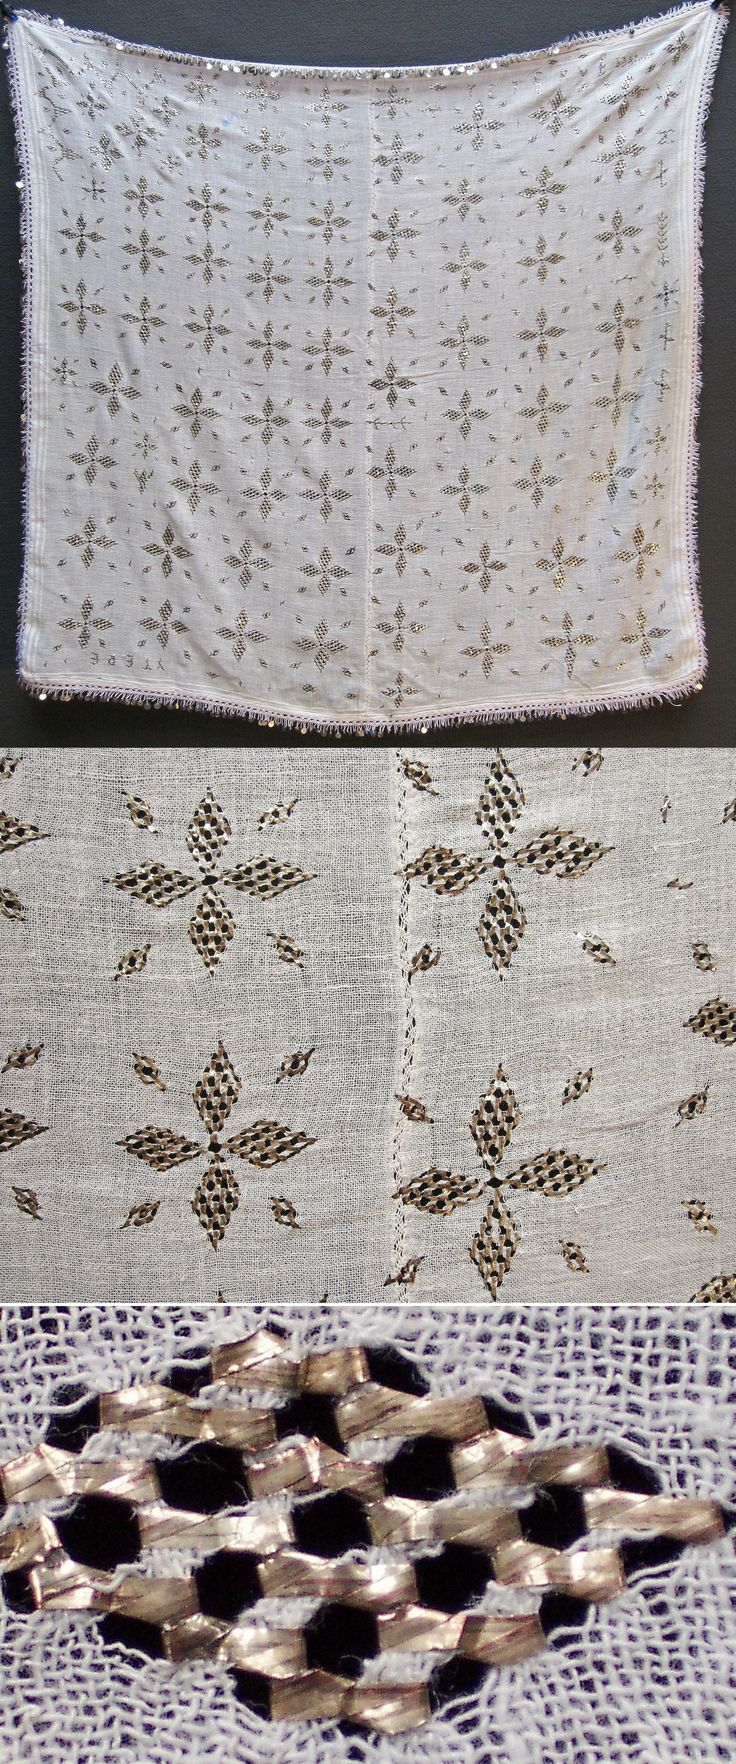 A large traditional 'yemeni' or 'yazma' (woman's head scarf) from the district of Mengen (province of Bolu).  Also called 'örtme' or 'pô'.  Rural, mid-20th century.  'Two-sided' embroidery (identical on both sides of the fabric) in 'telkırma technique' (motives obtained by sticking narrow metallic strips through the fabric and folding them.).   (Inv.nr. yaz003 - Kavak Costume Collection-Antwerpen/Belgium).